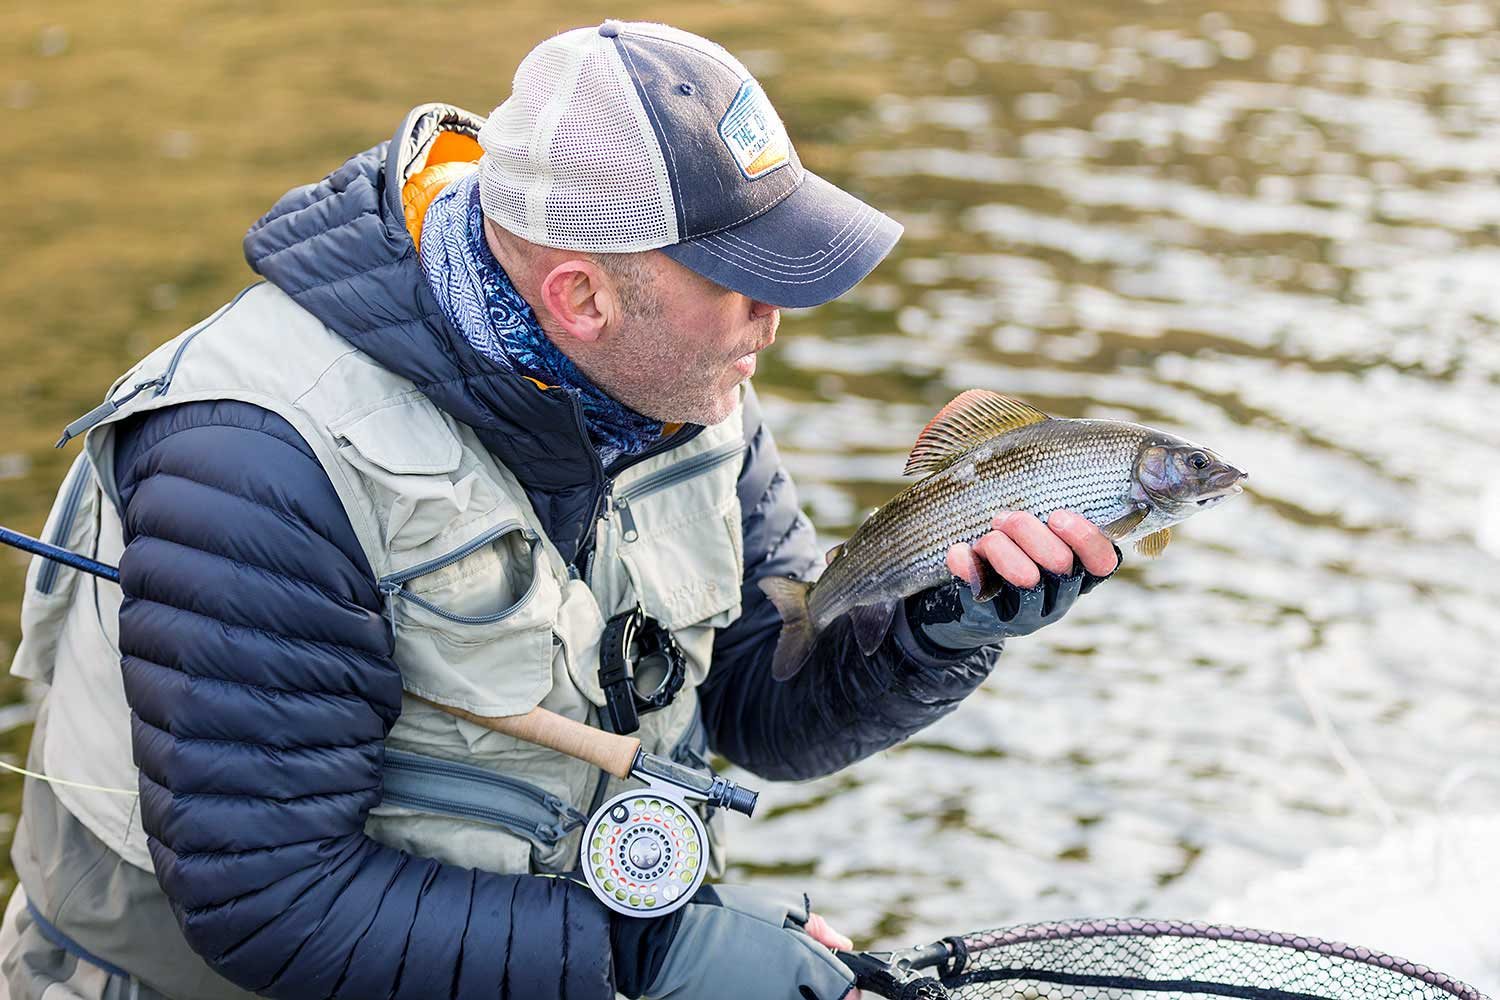 Winter Grayling, Grayling, Fishing, River Tweed, Tungsten Bugs, Orvis Helios 2, Alba Game Fishing, Lady of the Stream, New Zealand Strike Indicator